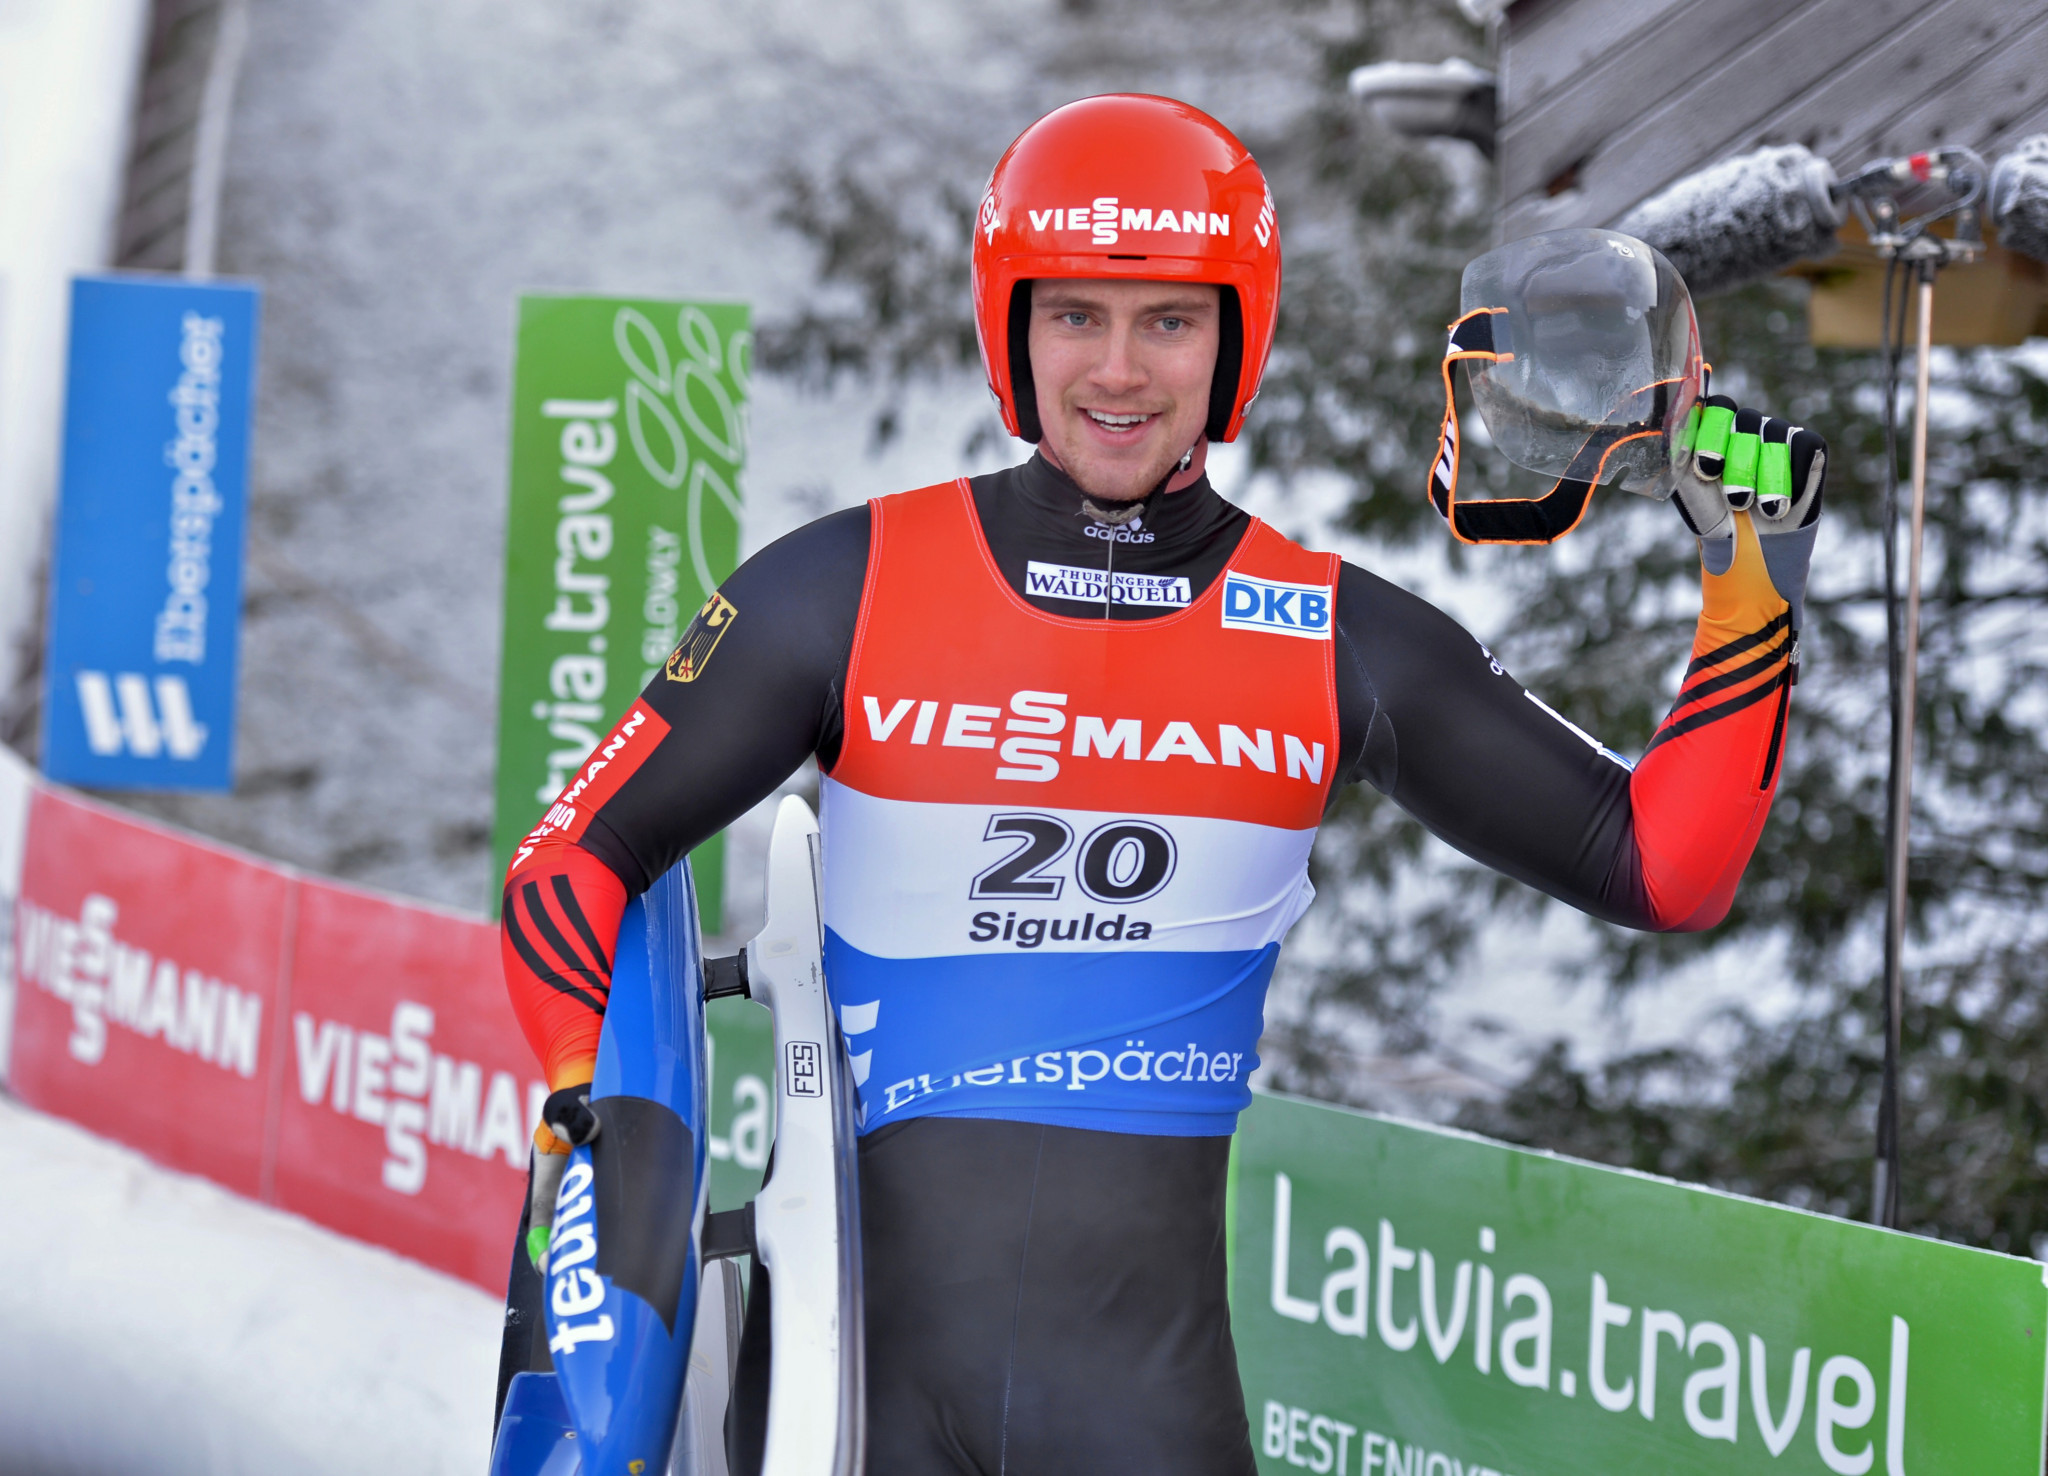 Sigulda has hosted the European Championships on four previous occasions ©FIL